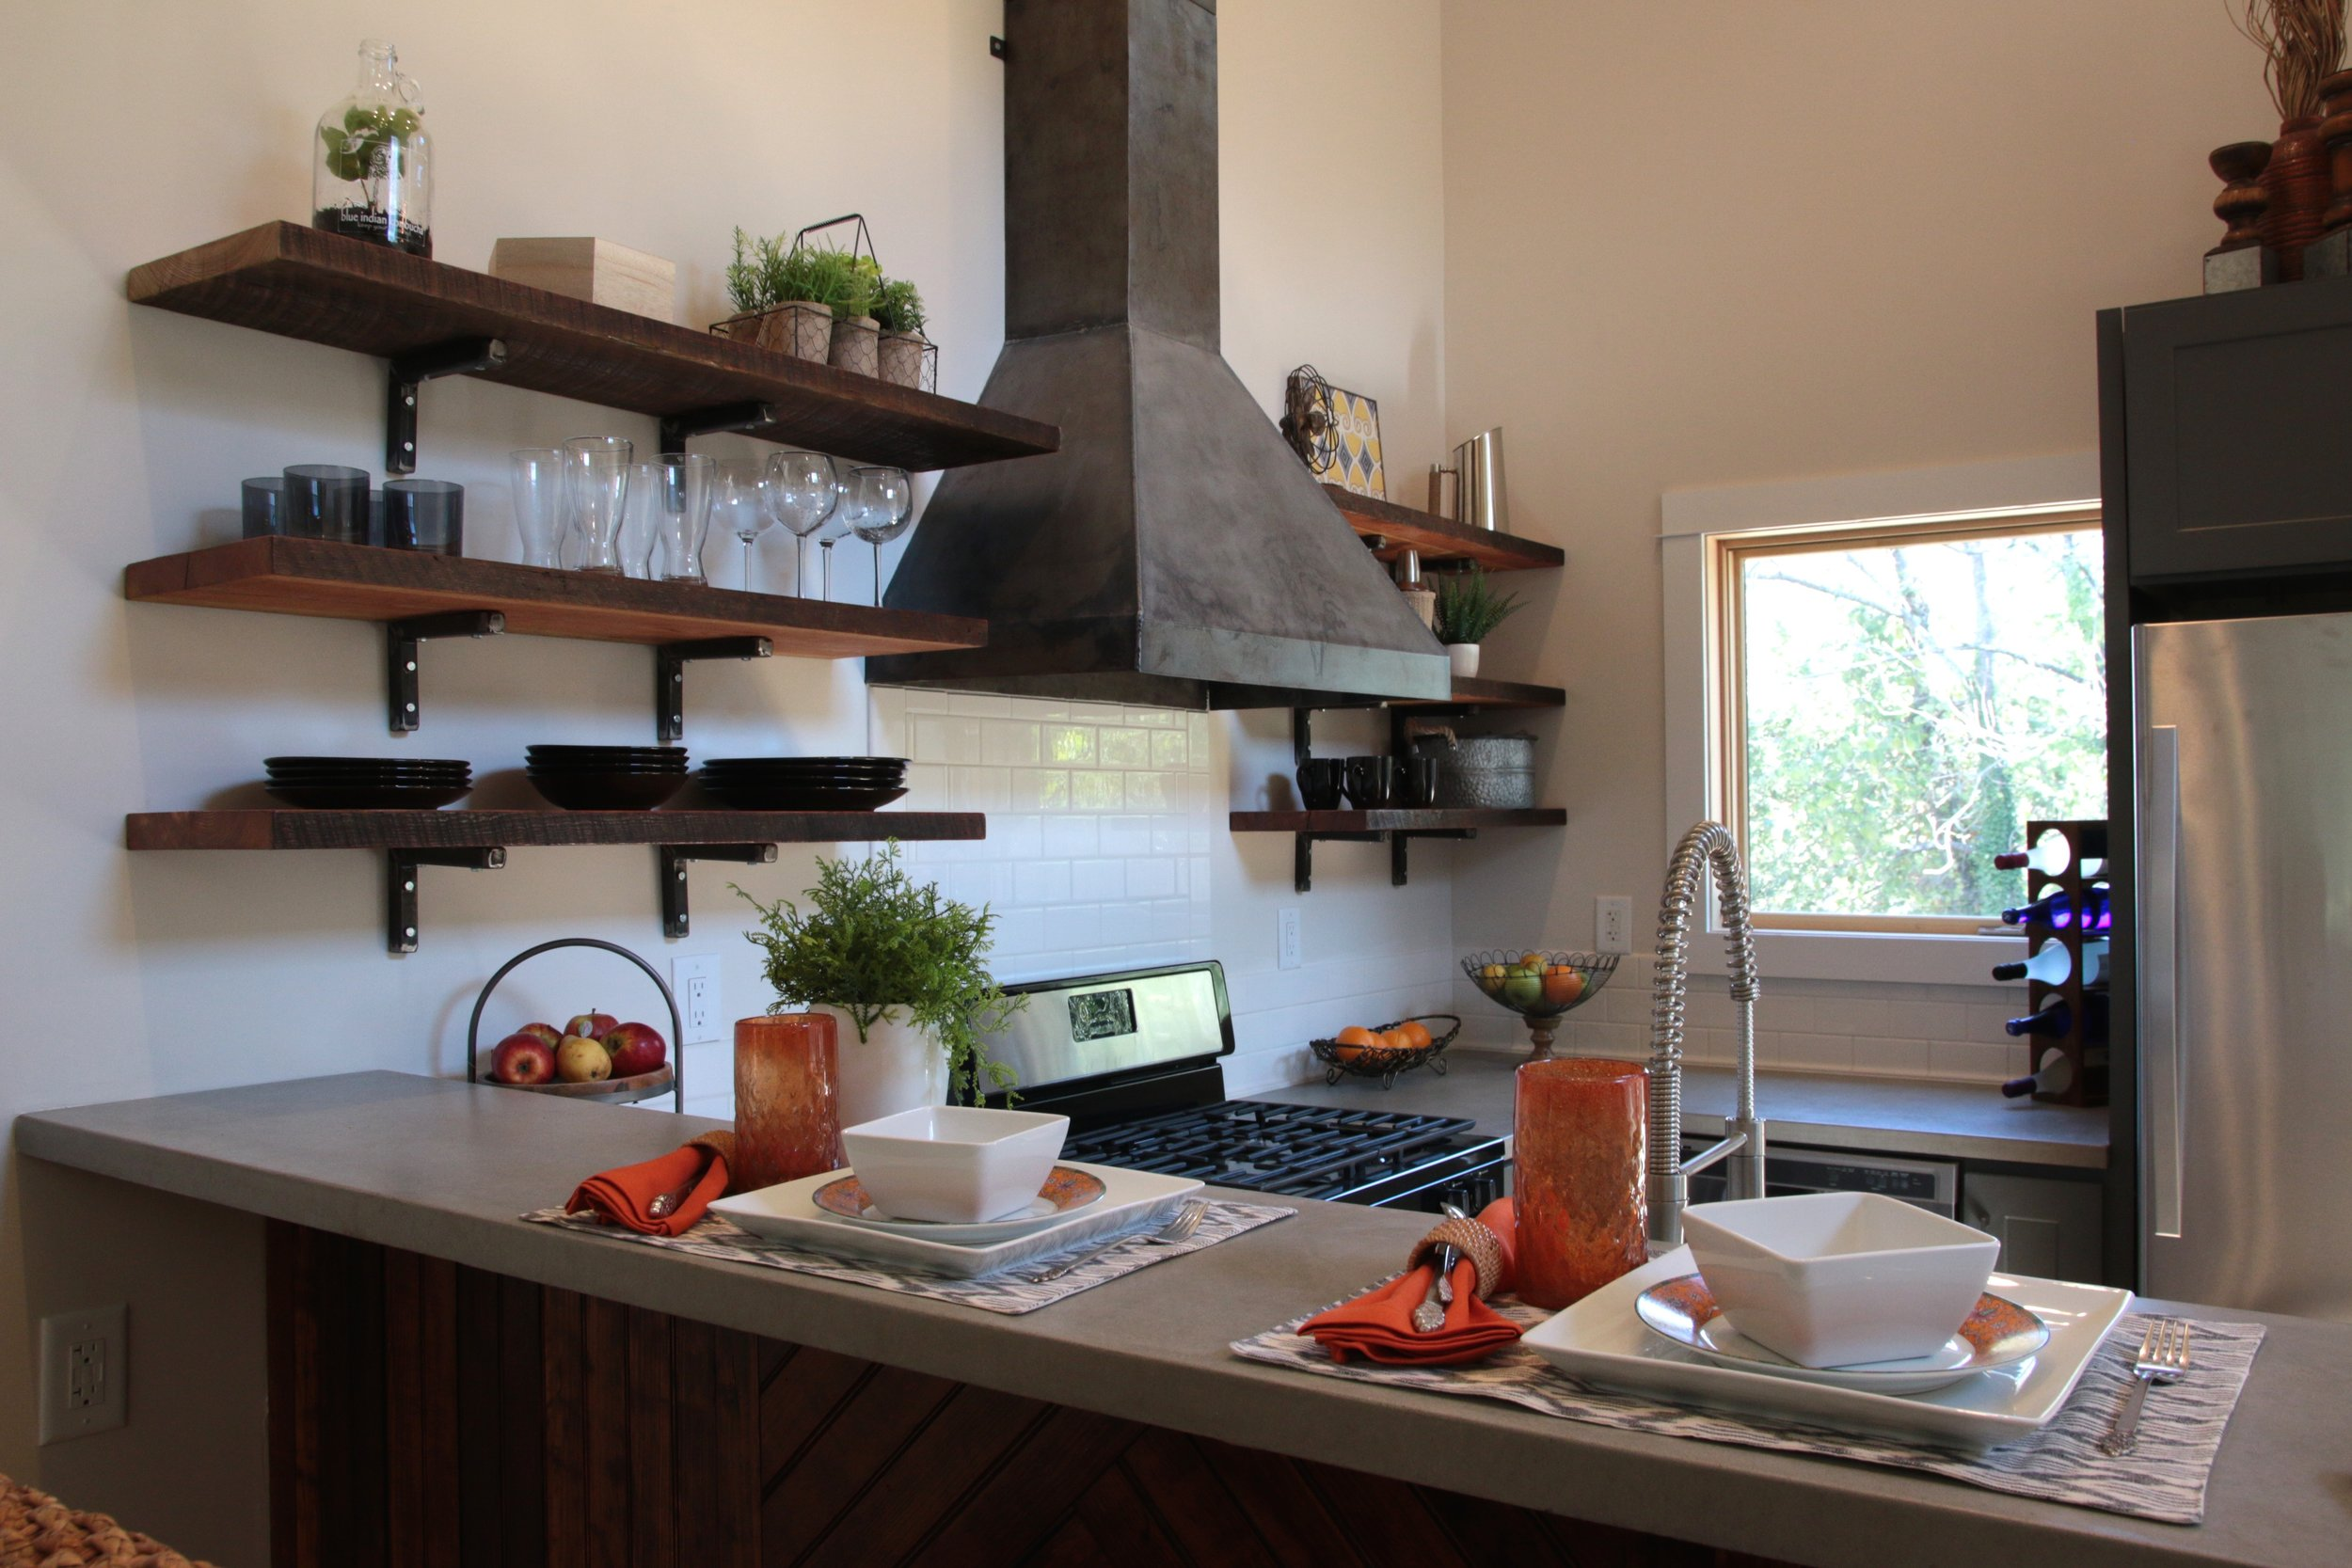 Urban Micro Home by Wind River Tiny Homes - concrete counter by Set In Stone, custom steel stove hood, Galley Workstation 4 kitchen sink, reclaimed beam open shelving